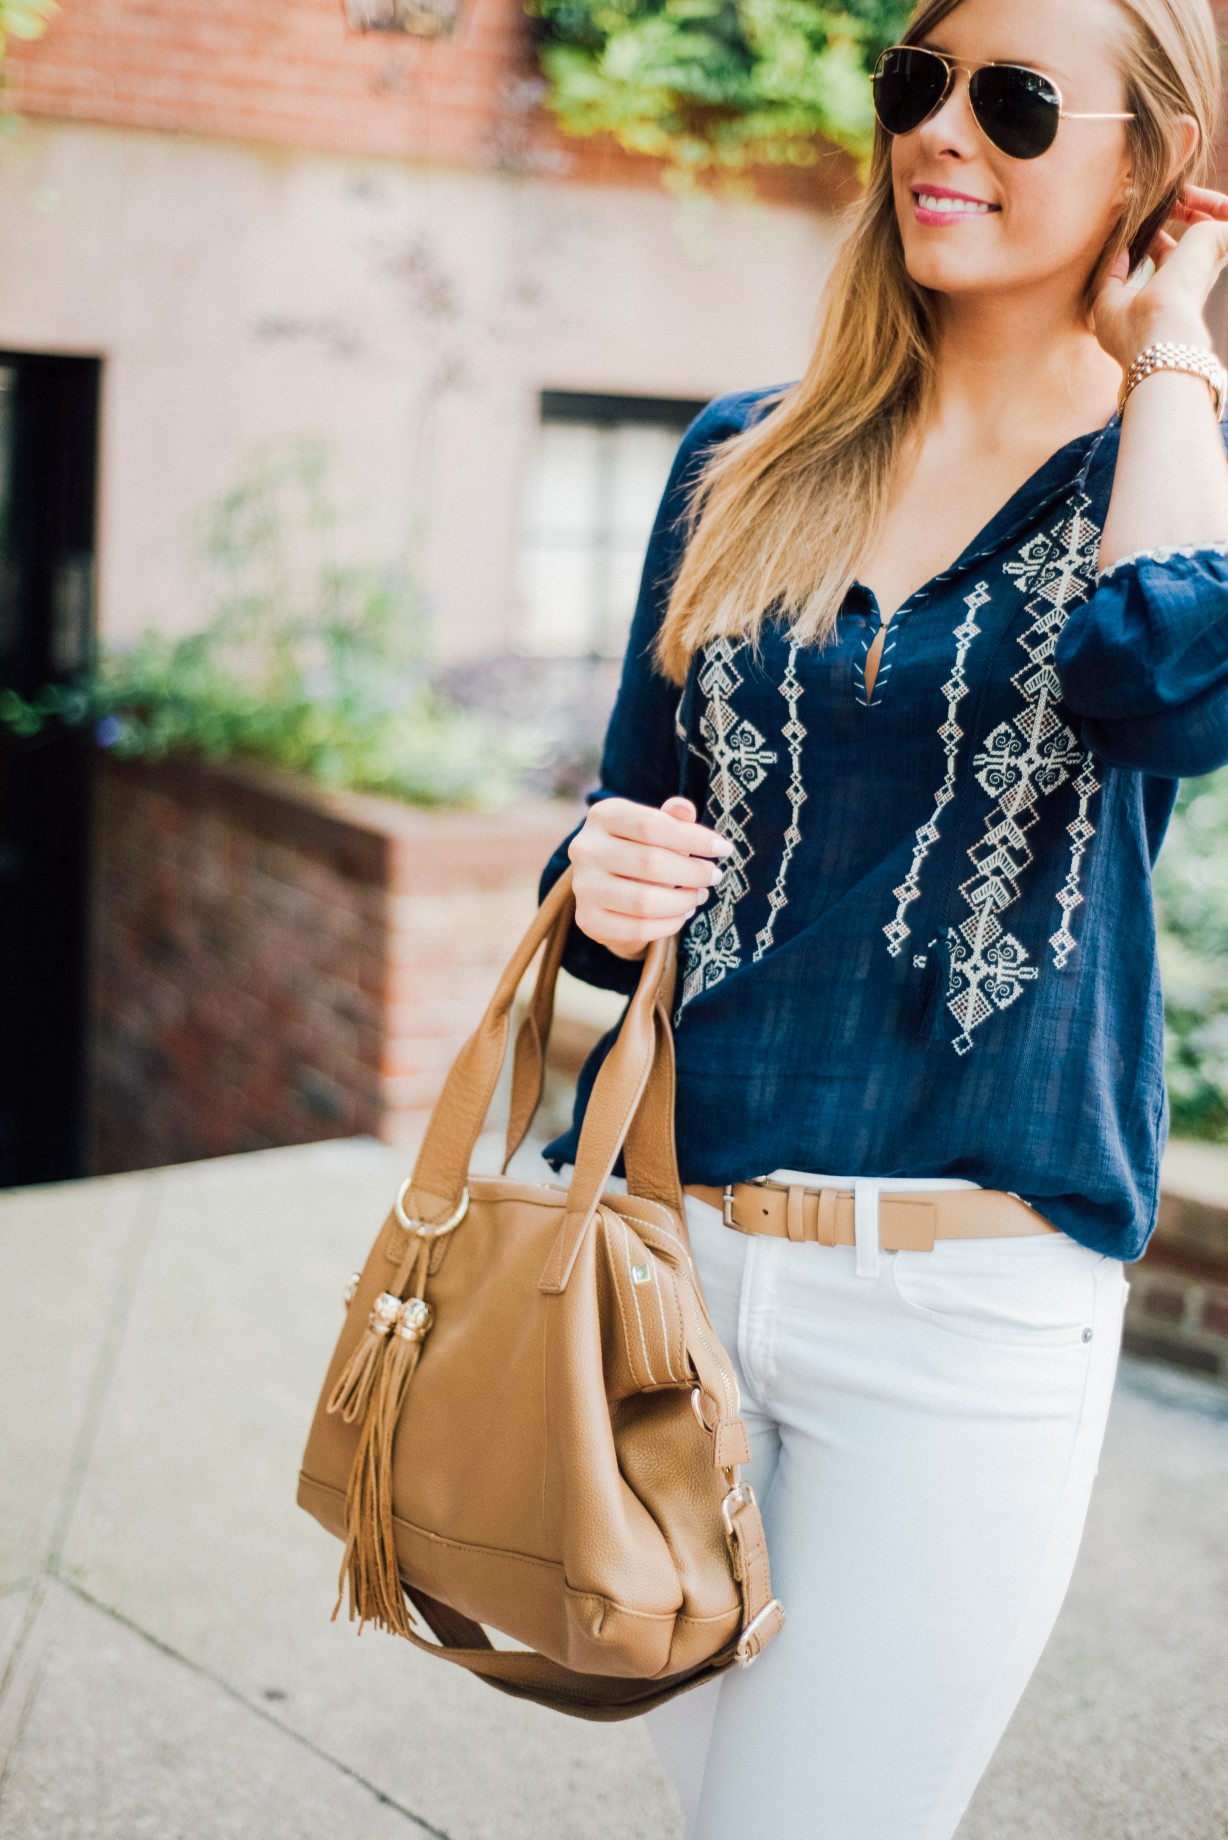 J Crew White Jeans Outfit Idea Boho Top Ray Ban Aviators Fashion Blogger West Village New York Lauren Slade Style Elixir 9